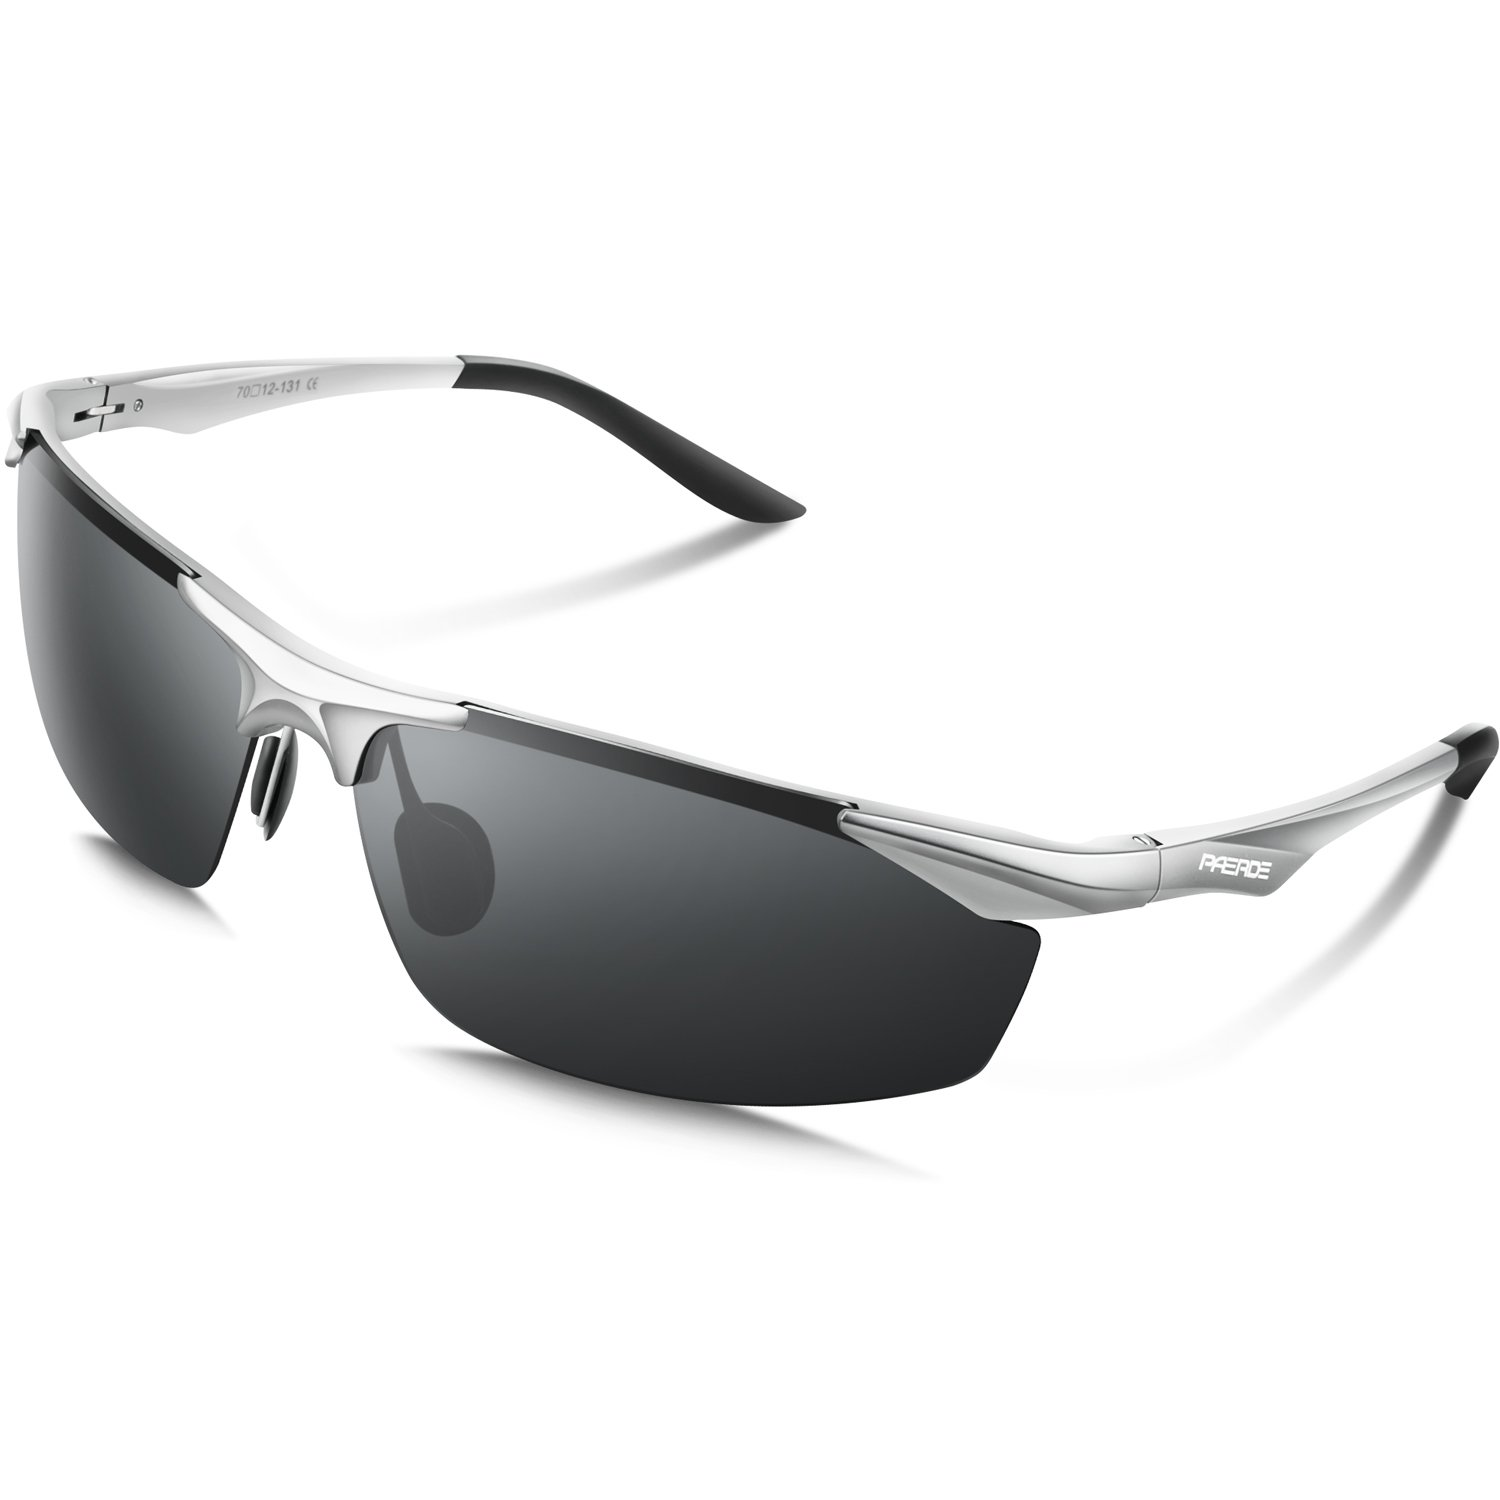 PAERDE Men's Polarized Sports Sunglasses for Baseball Running Cycling Fishing Golf Unbreakable Frame - Metal Frame Al-Mg Glasses (Silver&Black, none)